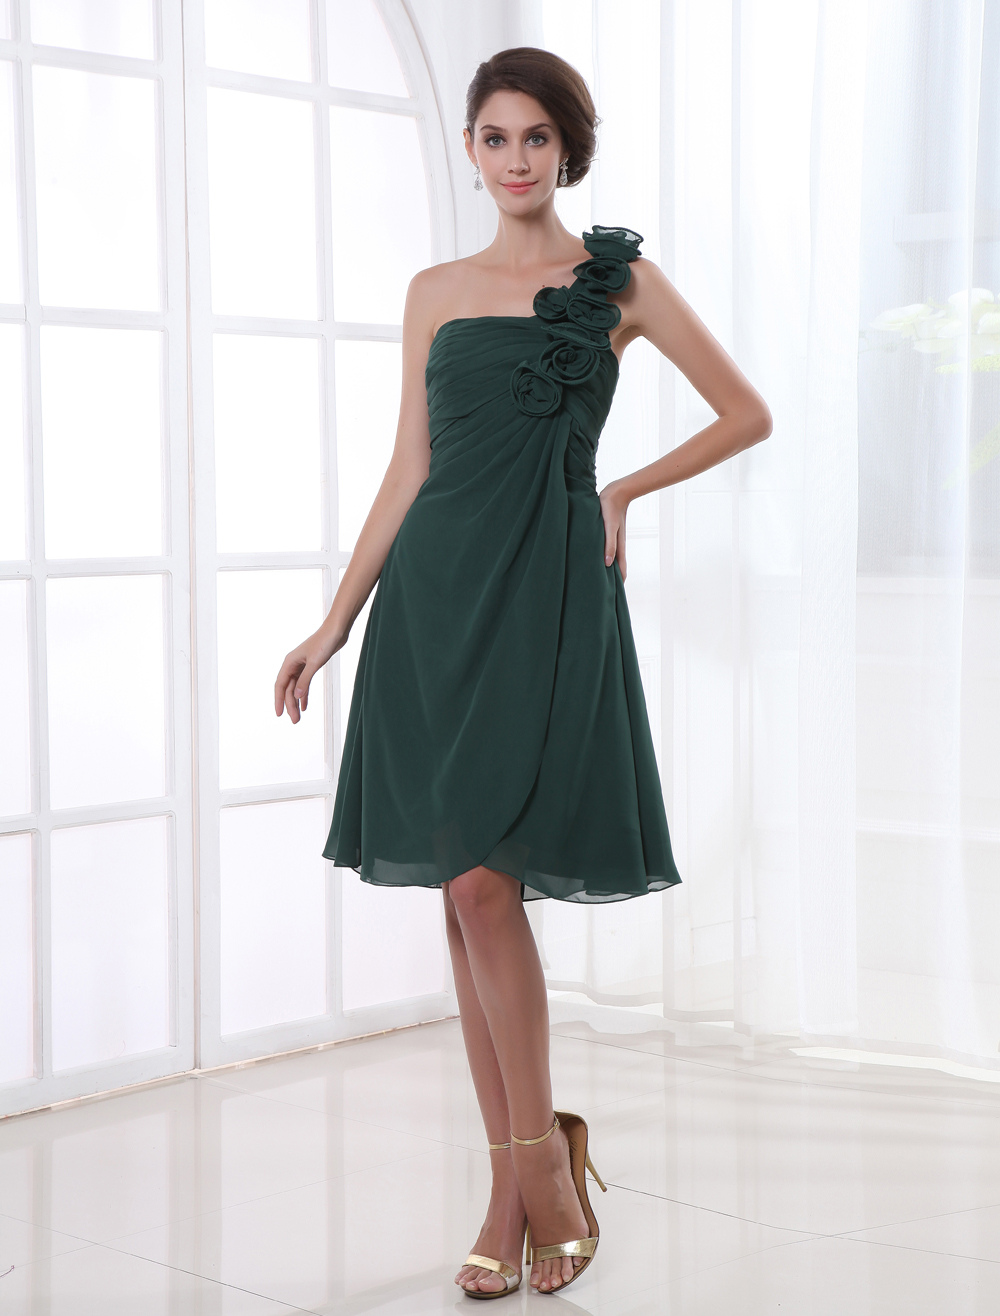 A-line Chiffon Floral One-Shoulder Knee-Length Wedding Bridesmaid Dress